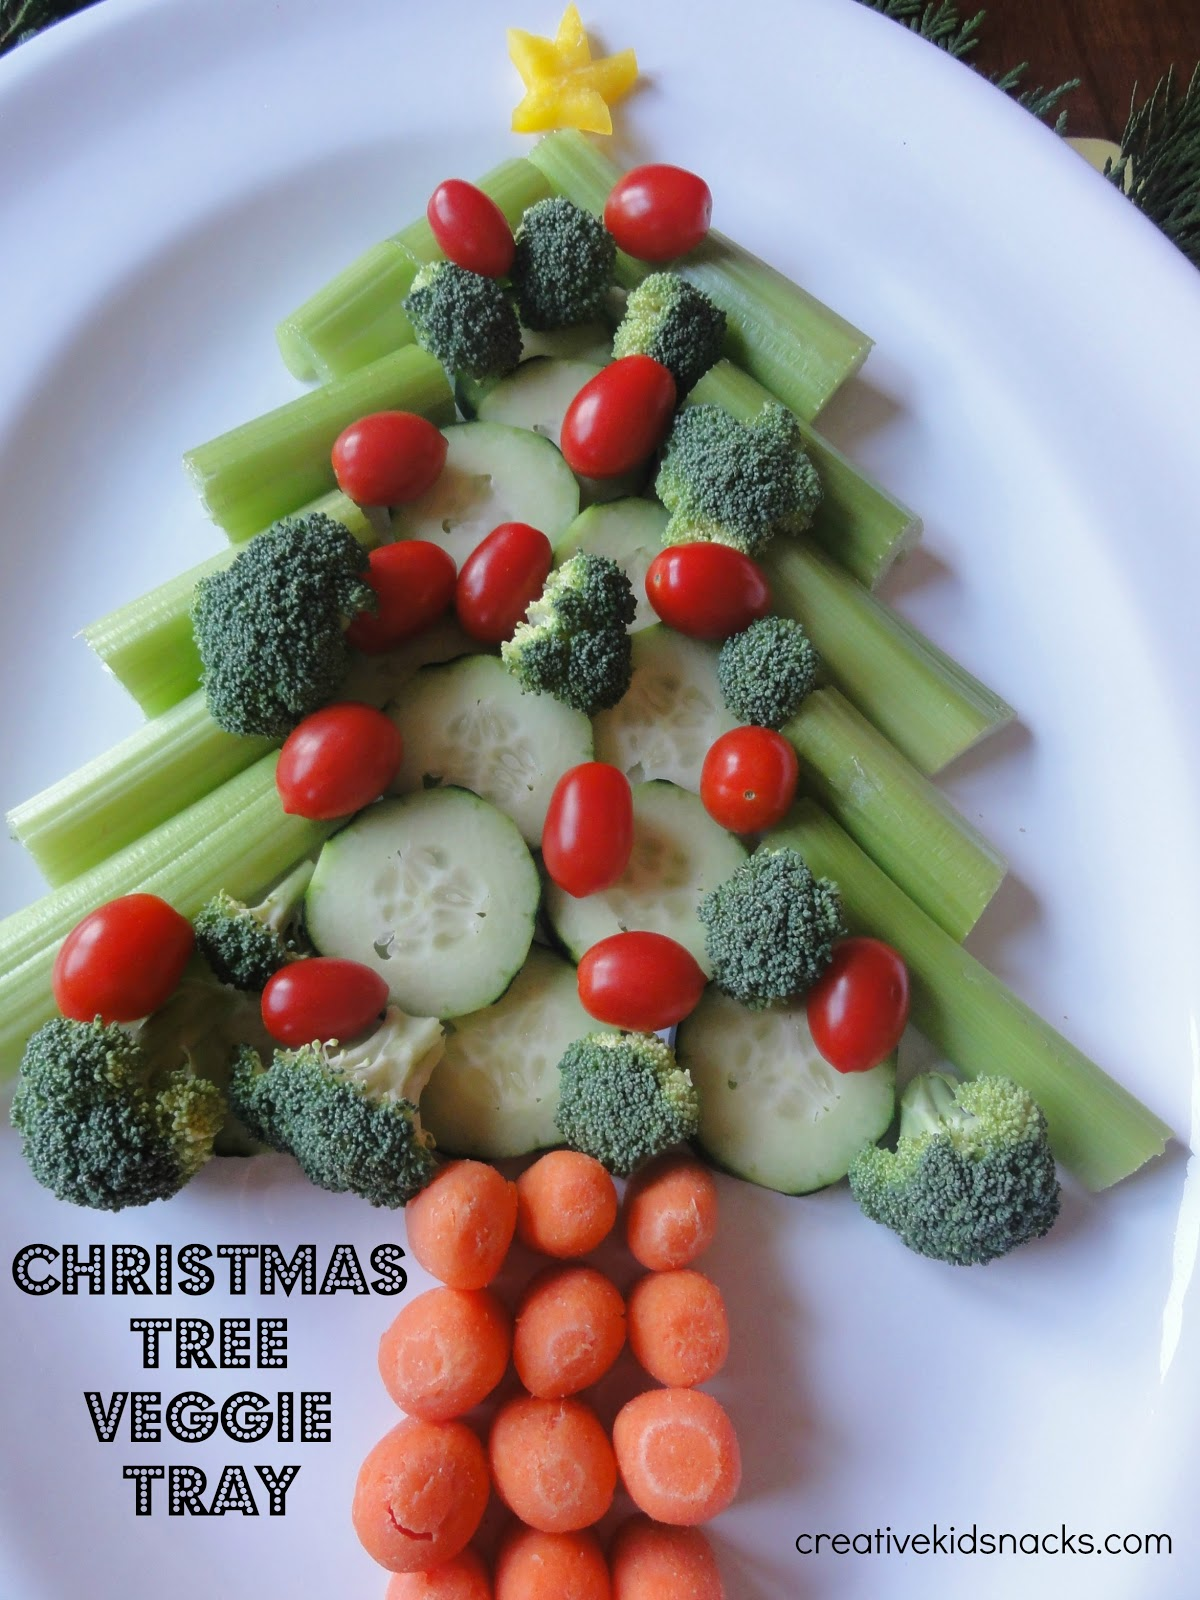 Christmas Veggie Tray.3 Creative Christmas Veggie Trays